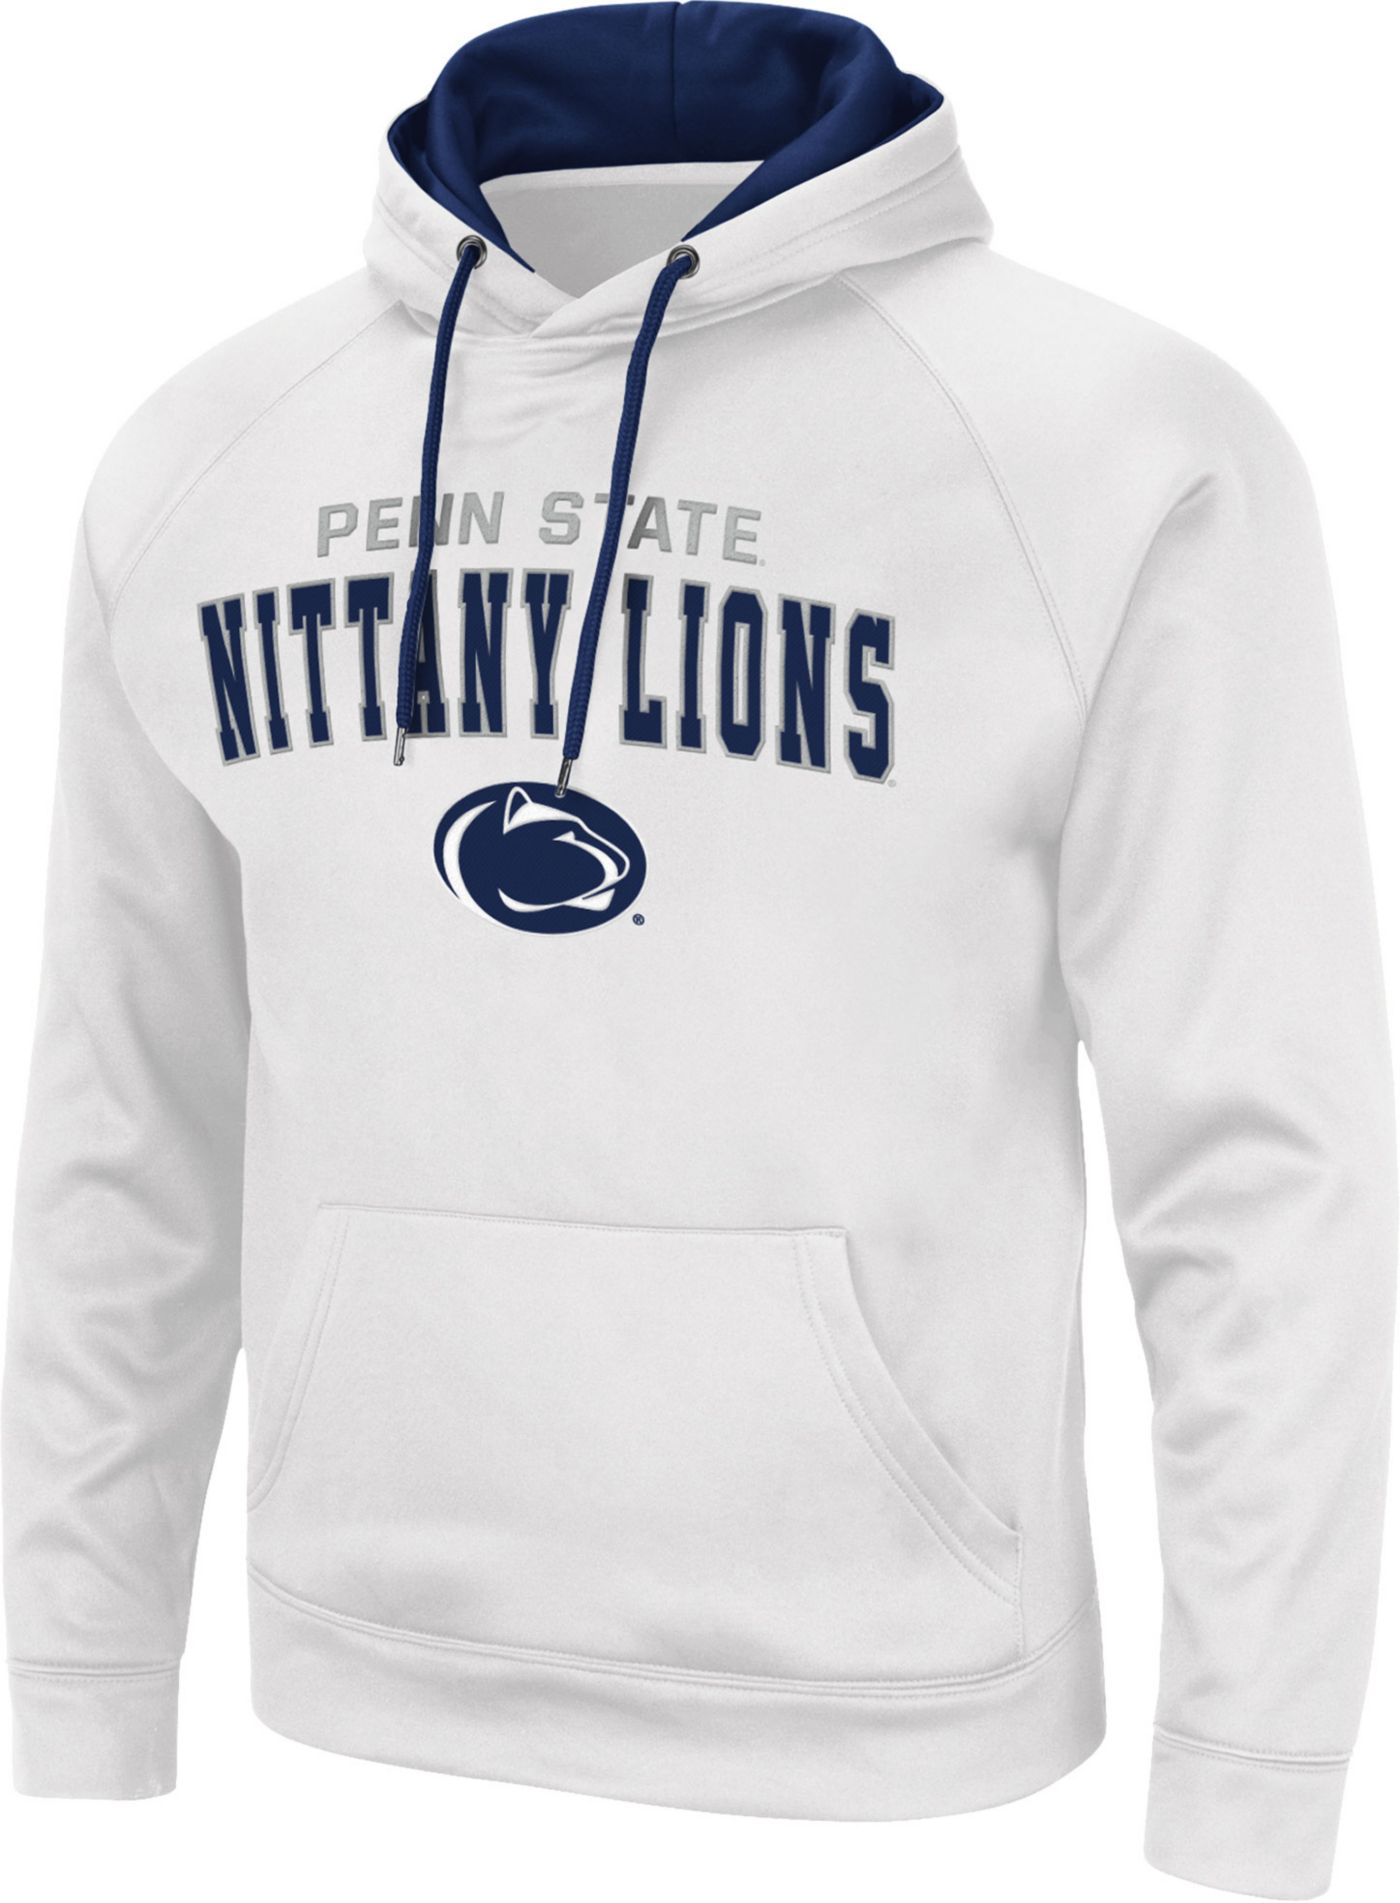 Colosseum Men's Penn State Nittany Lions Pullover White Hoodie